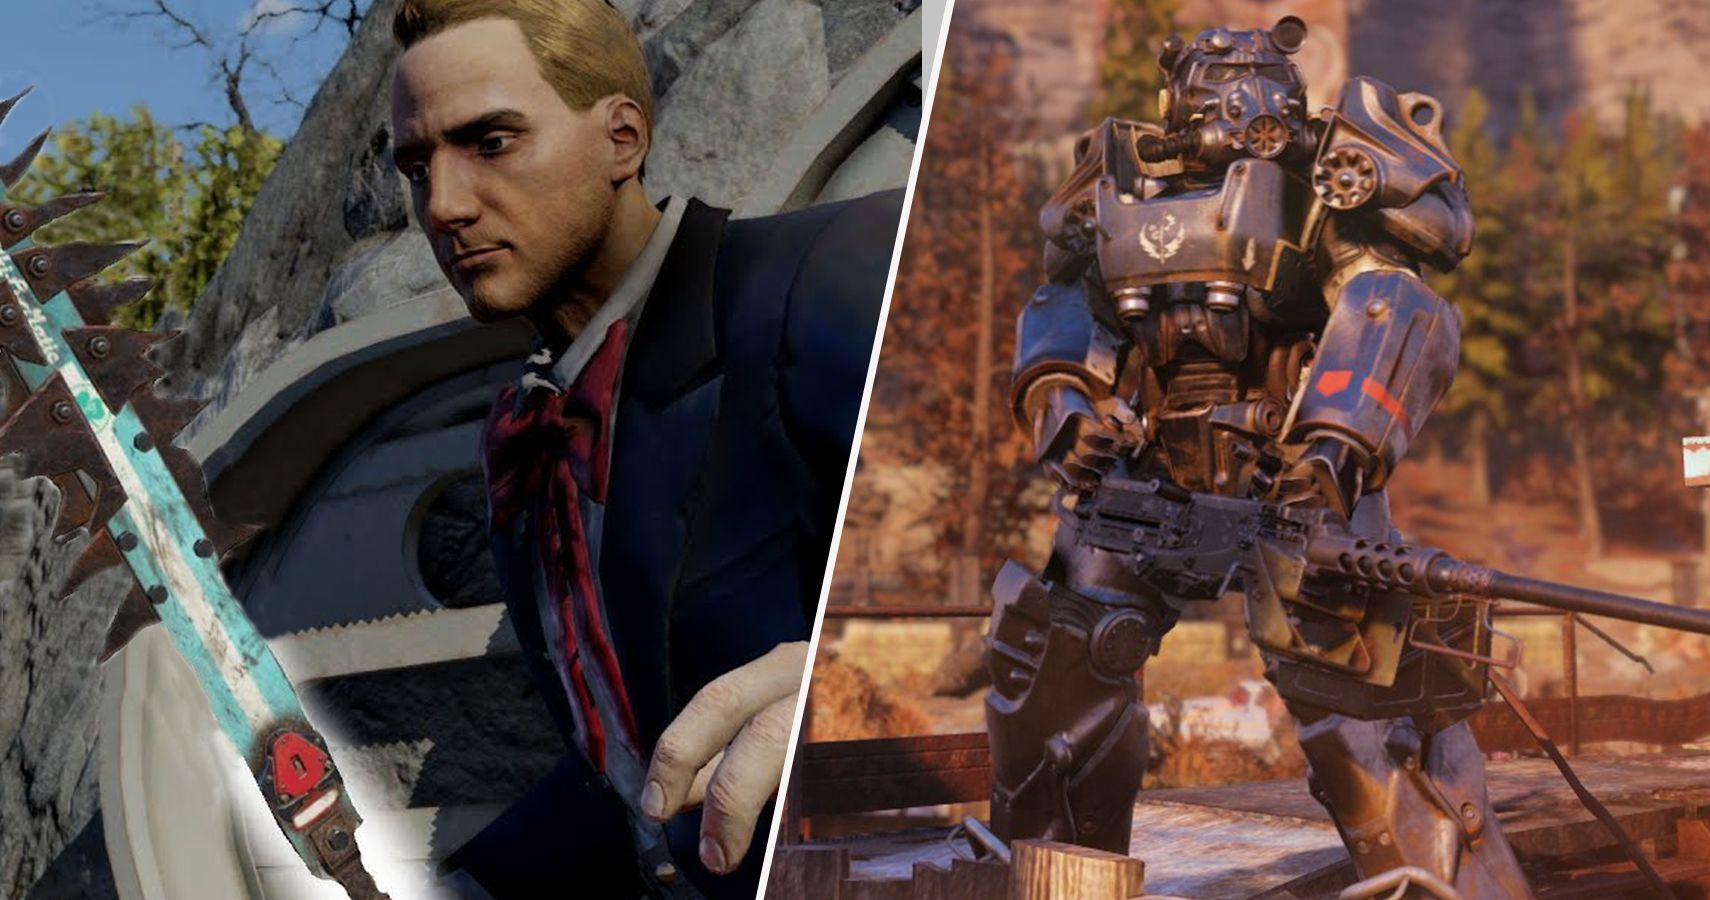 The 25 Strongest Weapons In Fallout 76 (And Where To Find Them)